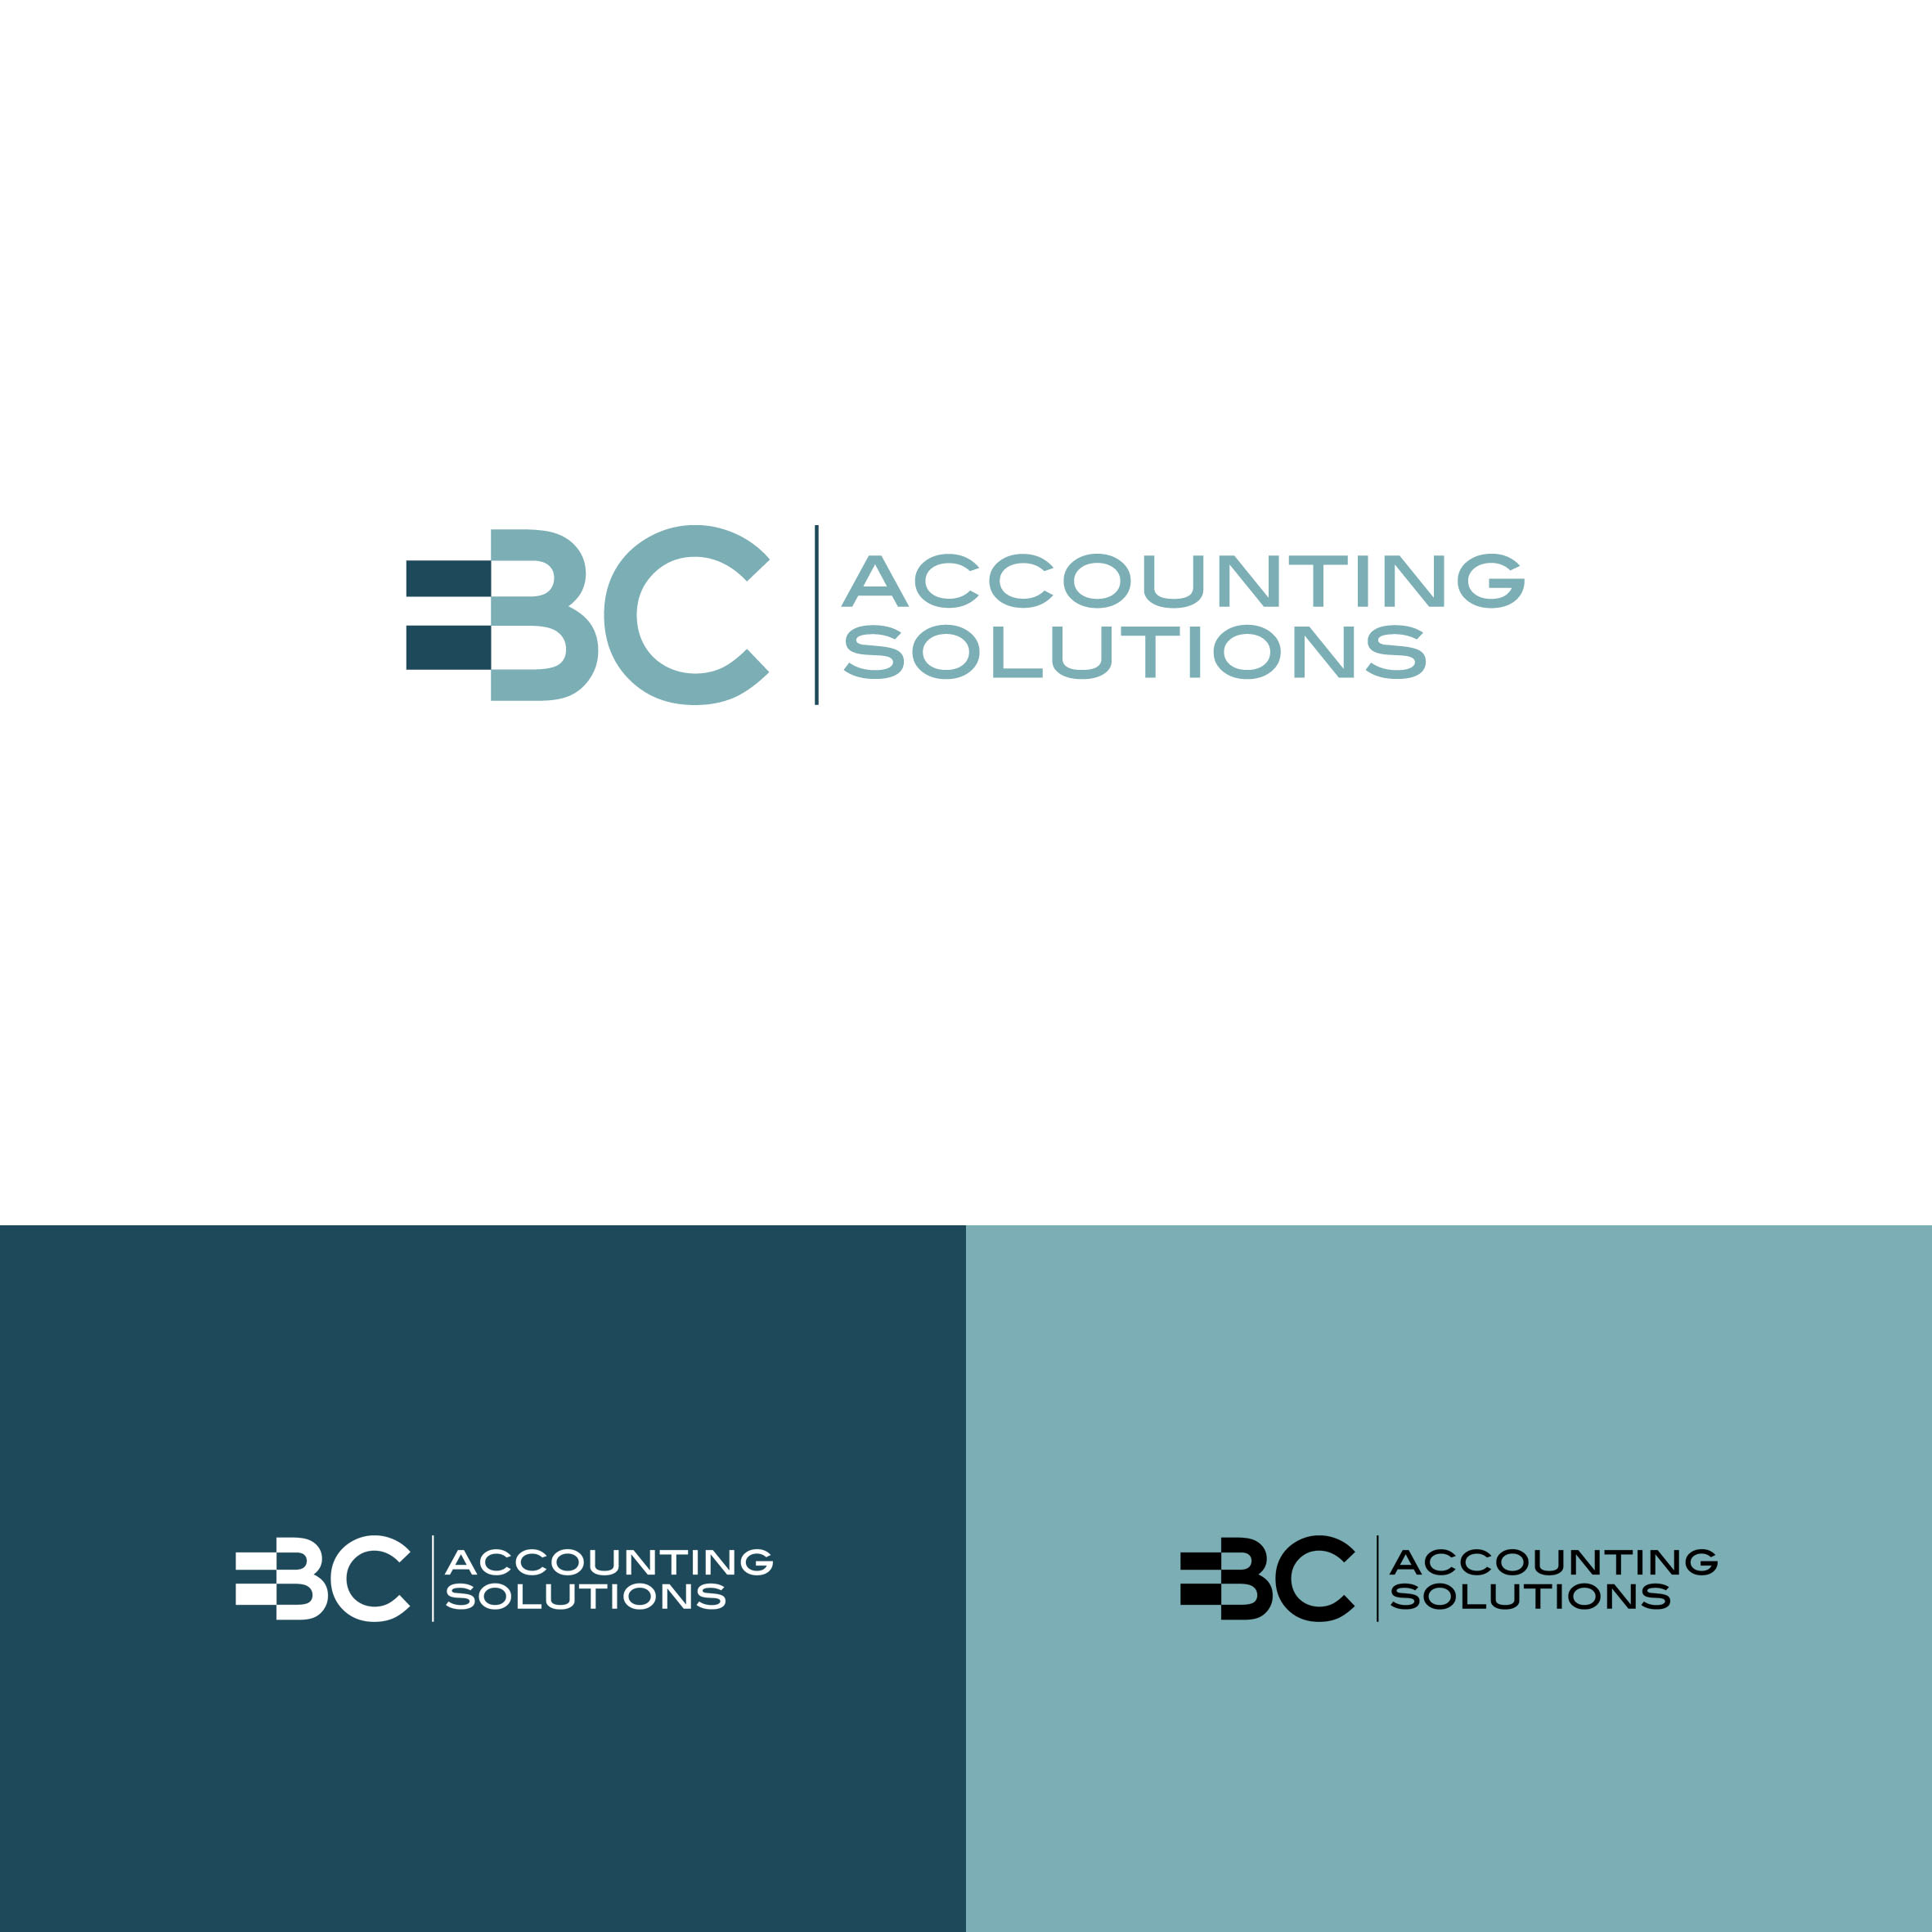 Logo Design by tanganpanas - Entry No. 130 in the Logo Design Contest New Logo Design for EBC Accounting Solutions.